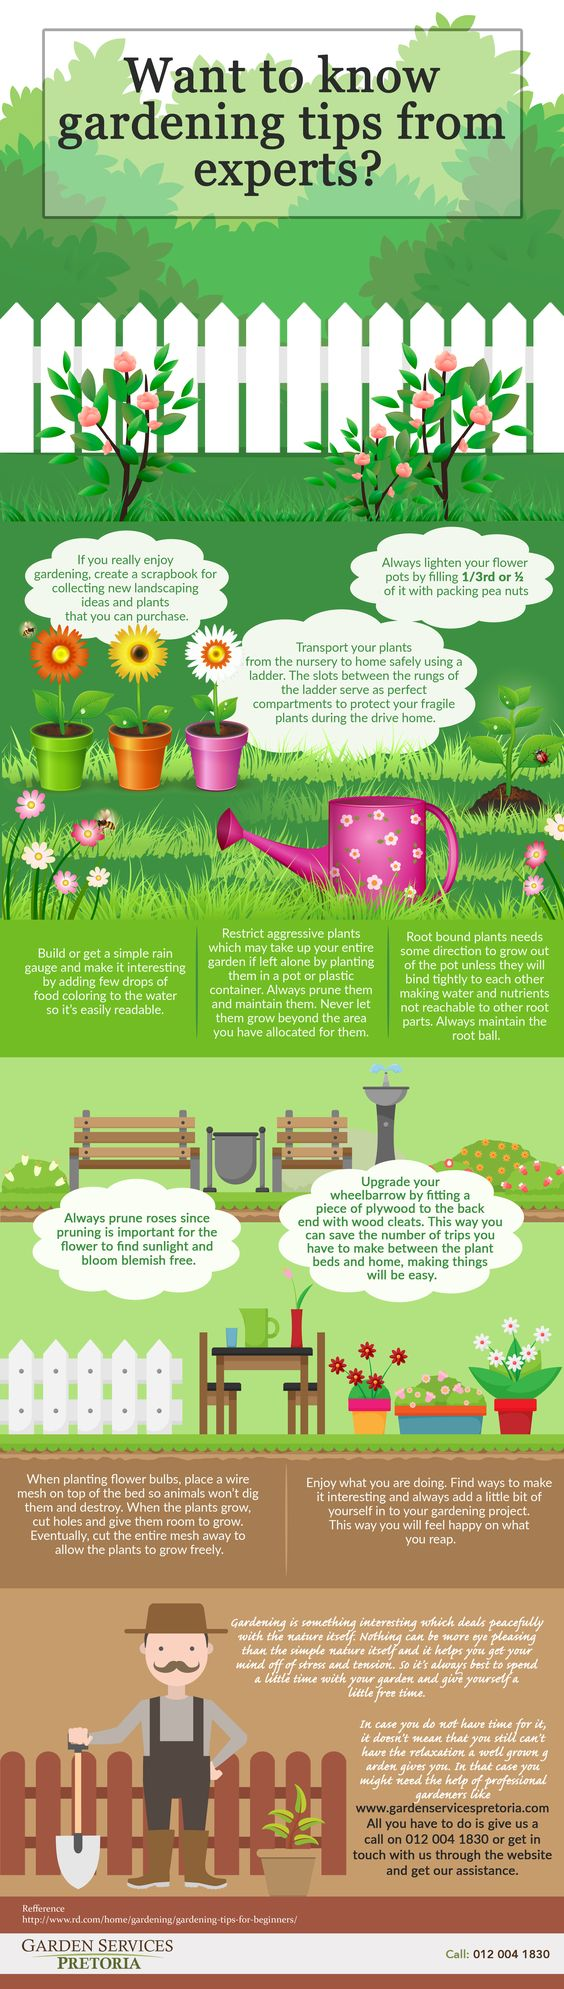 For your lawn and flower nursery to flourish, you will have to put in the effort. A few hours out of your daily schedule is all it takes. Frequent monitoring will help to keep things in order. This infographic shows you some tips from the experts that will provide proper guidance as to what needs to be done and how! Read more here: www.gardenservicespretoria.com